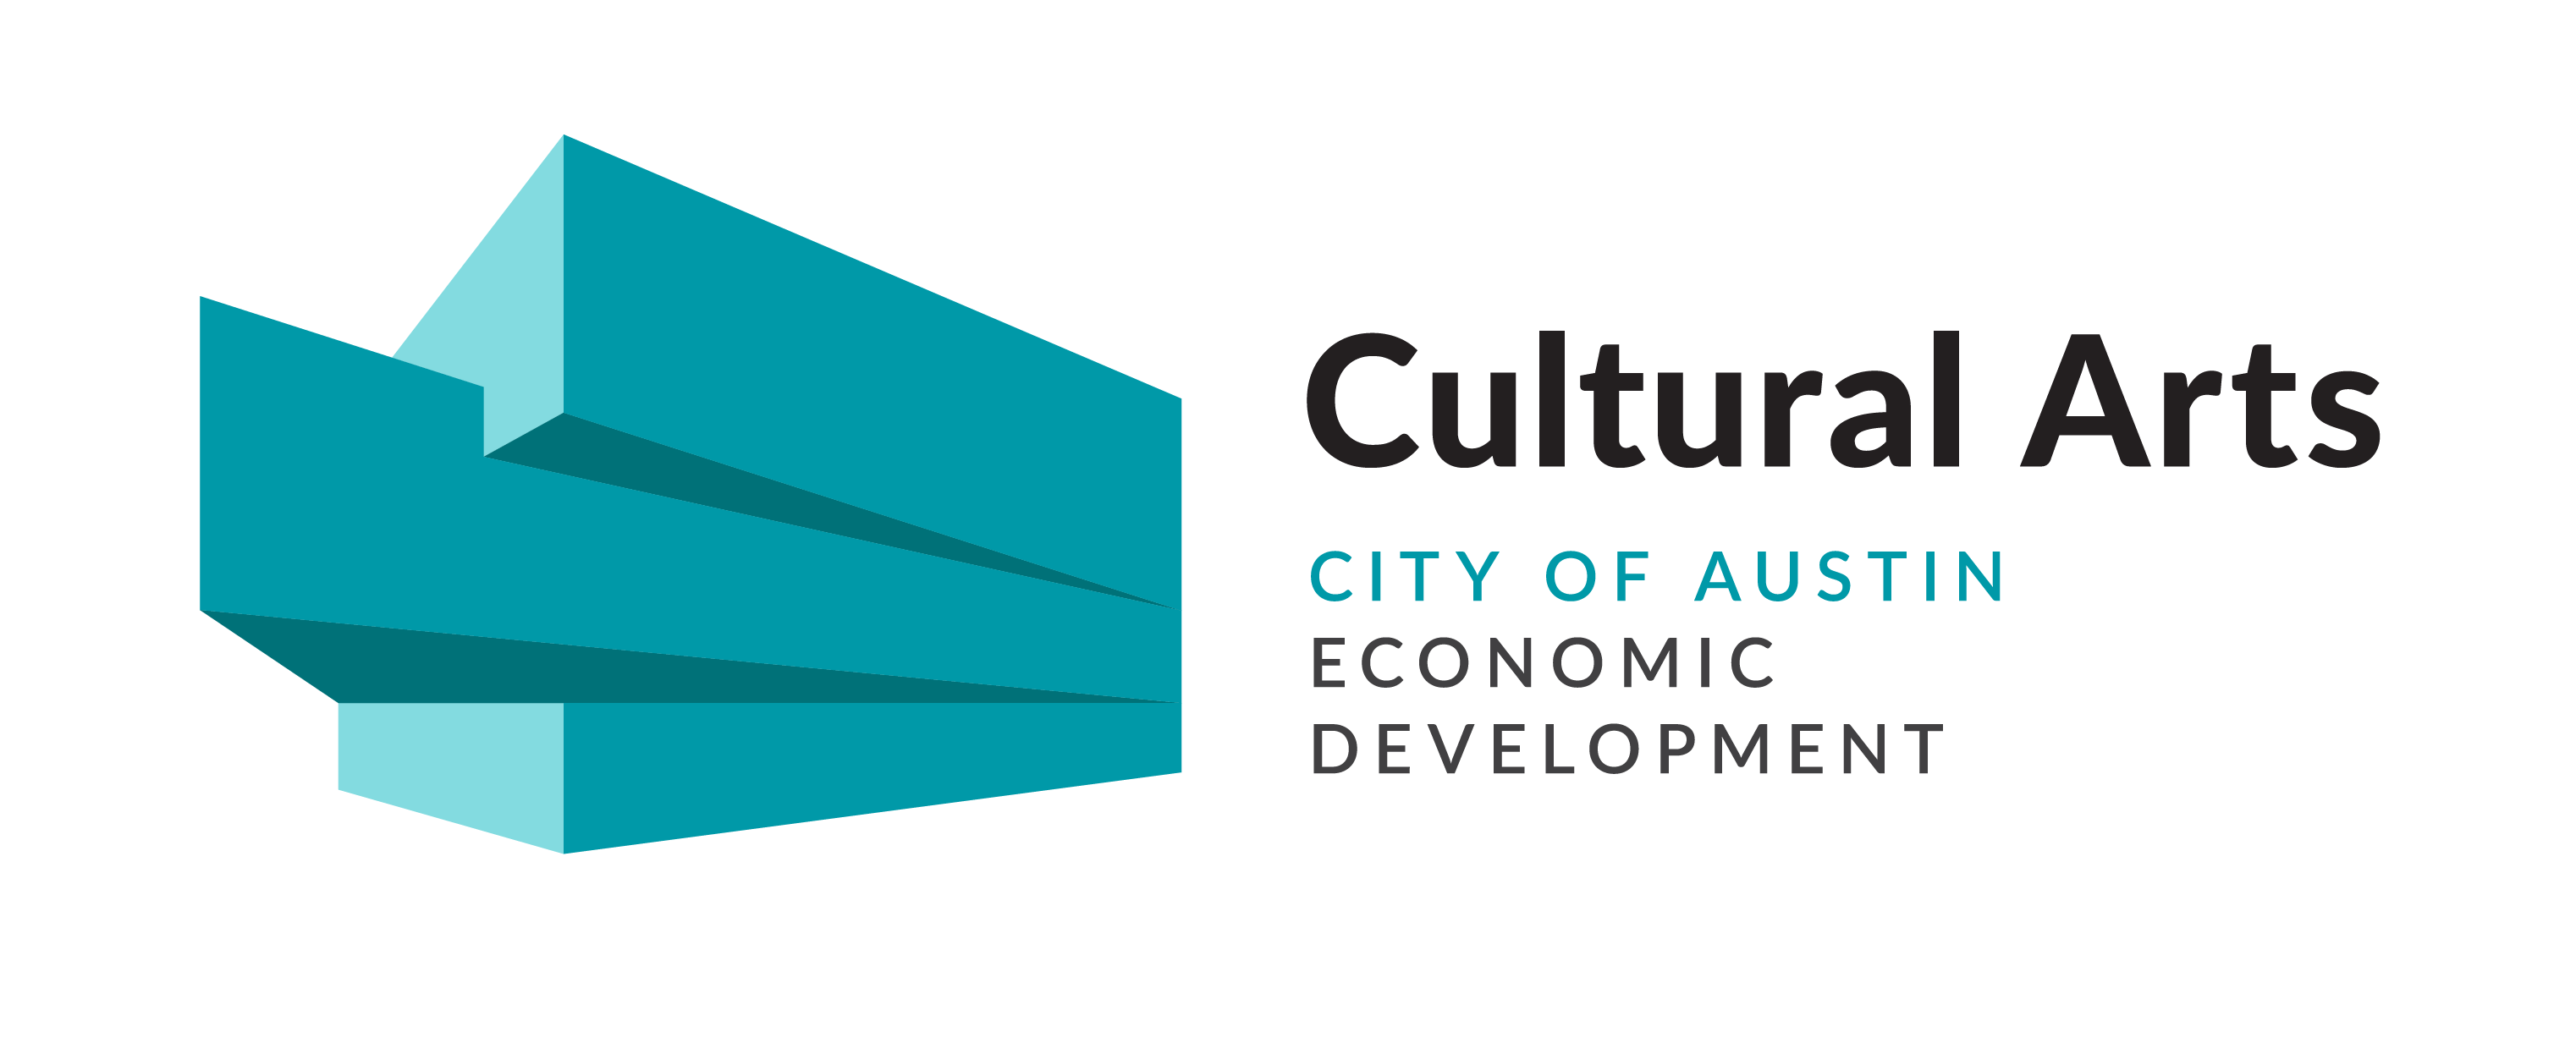 Cultural Arts, City of Austin Economic Development